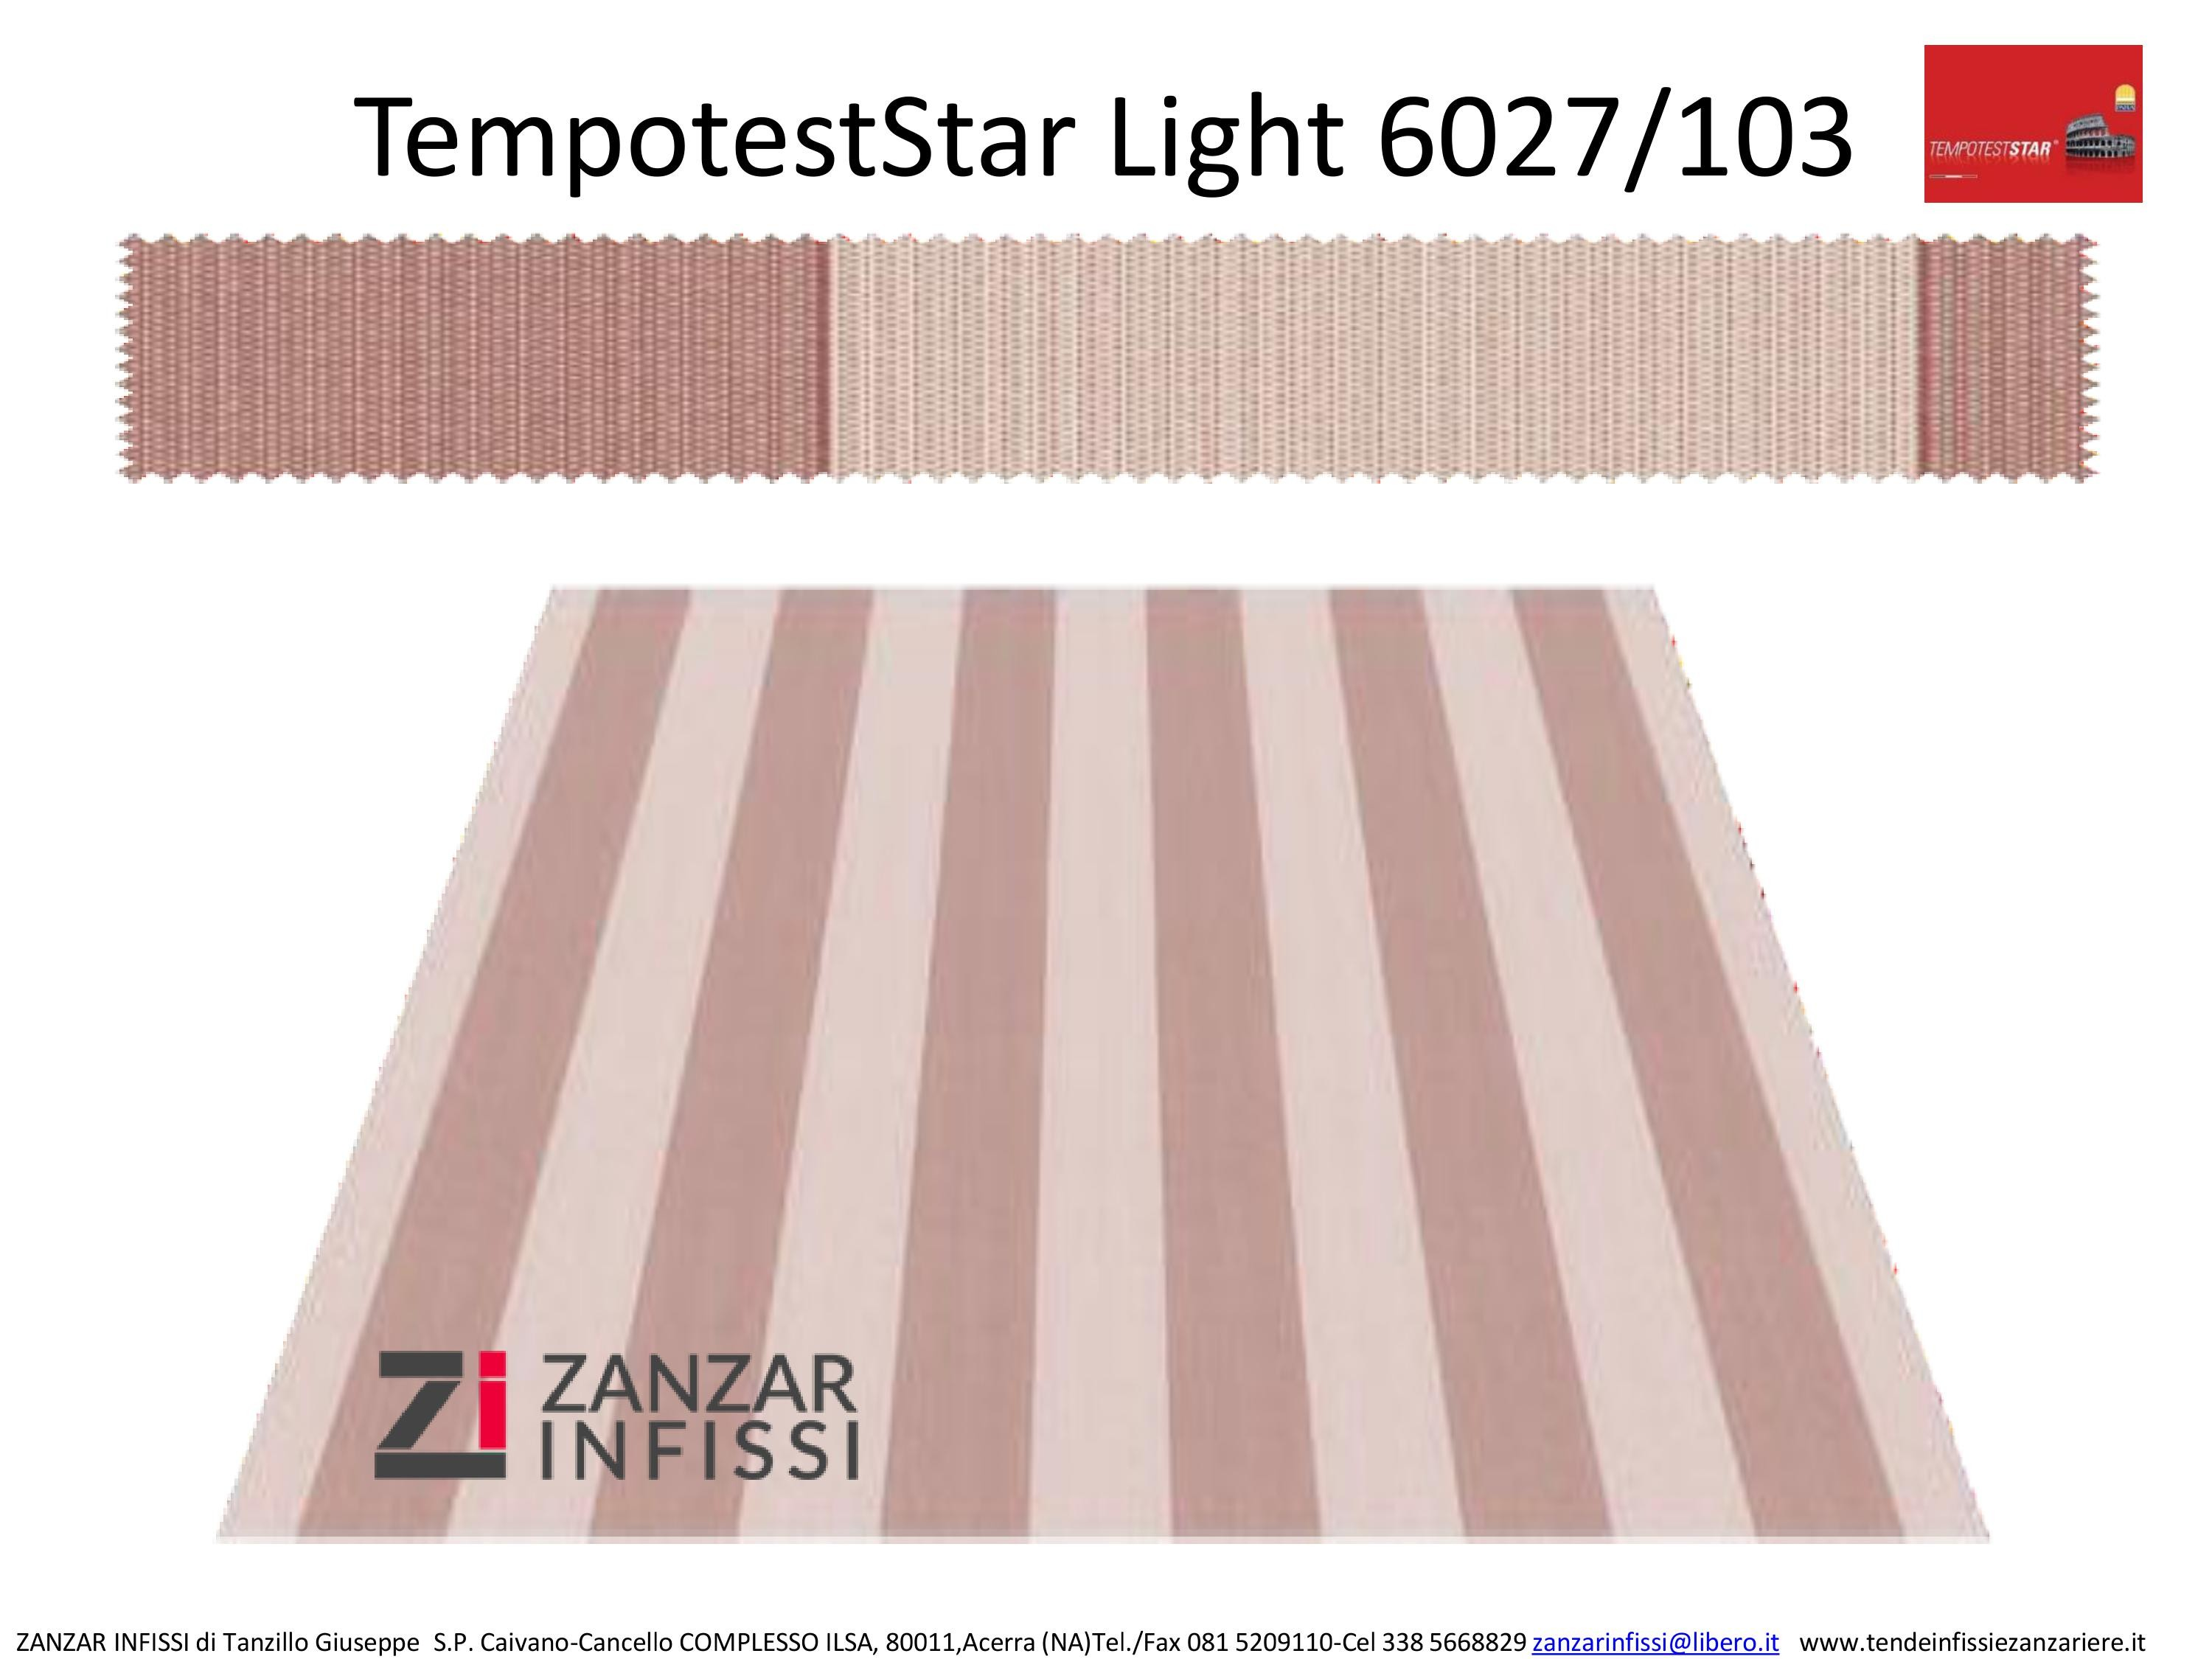 Tempotest star light 6227/103